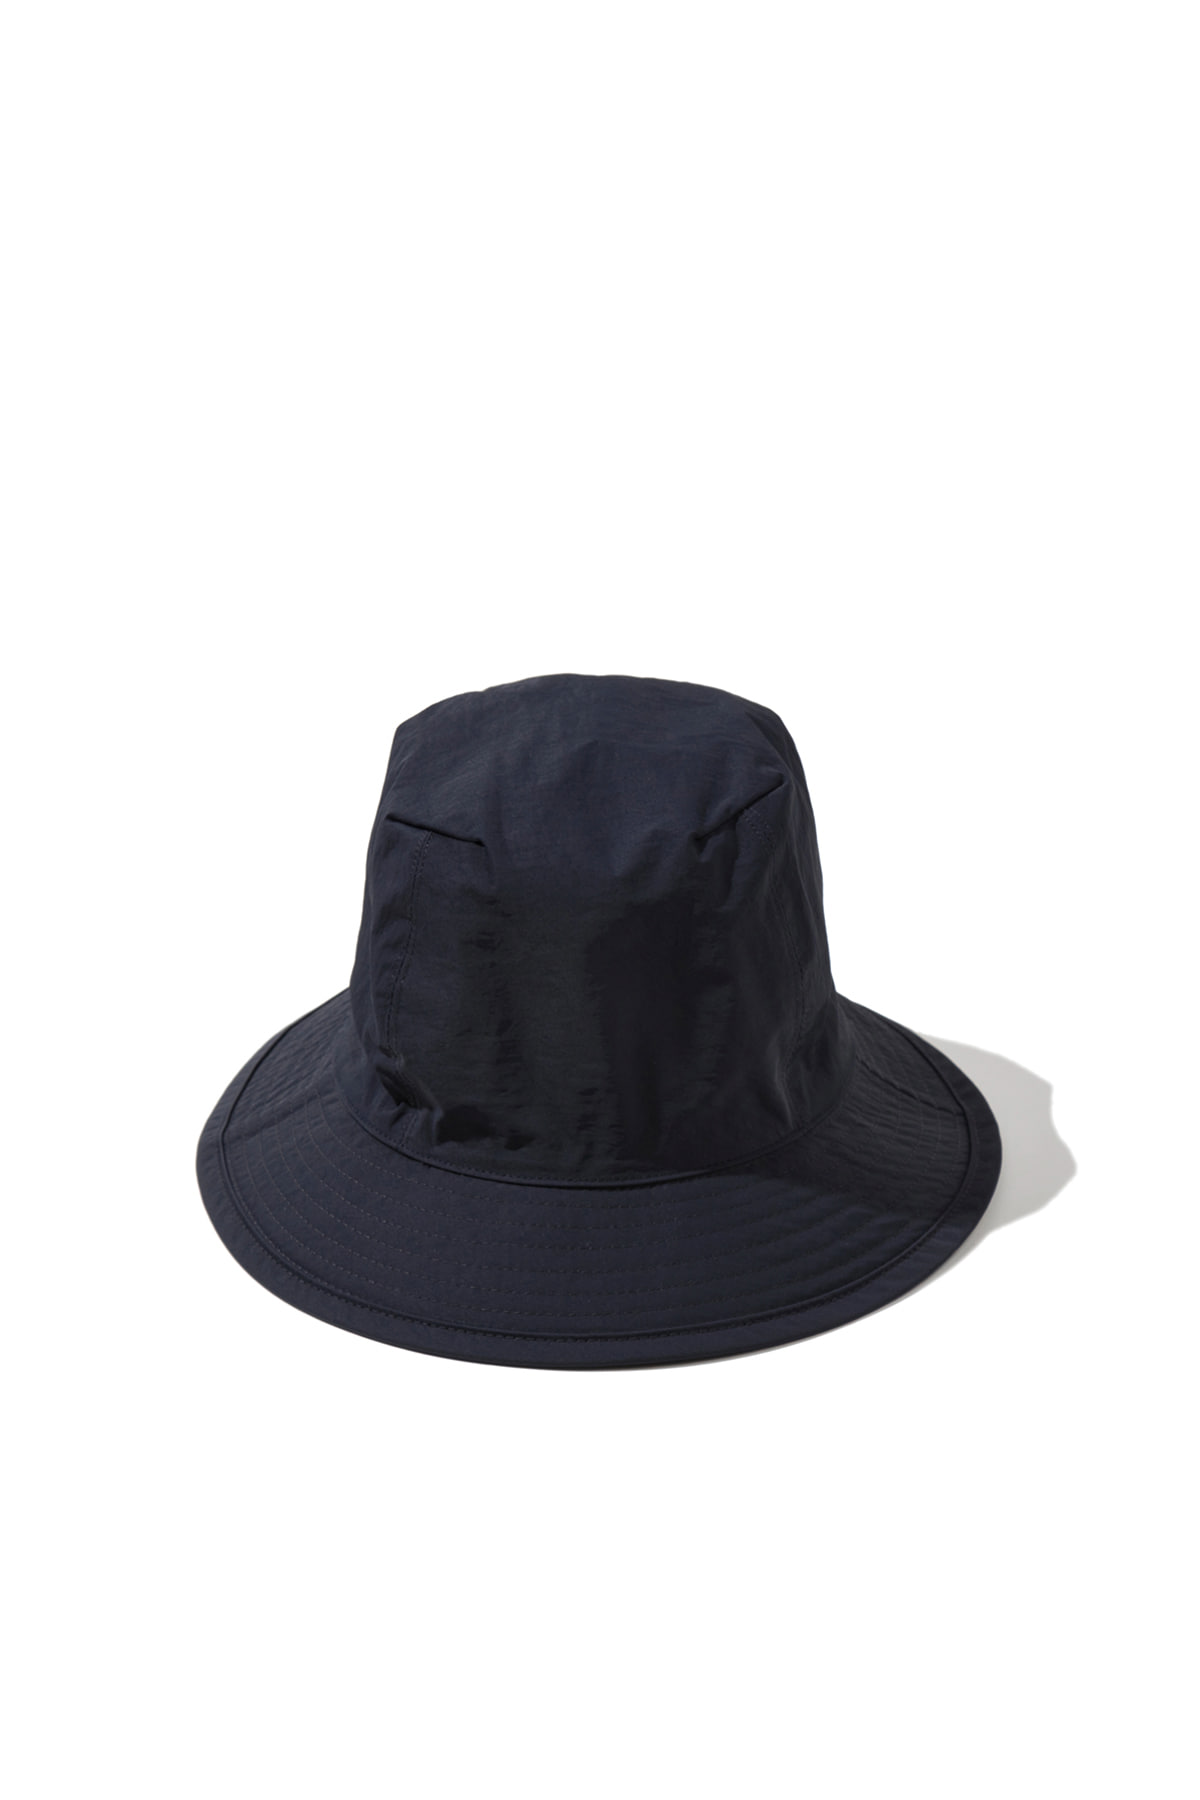 Blankof : HLG 01 H1 Bucket Hat (Navy)